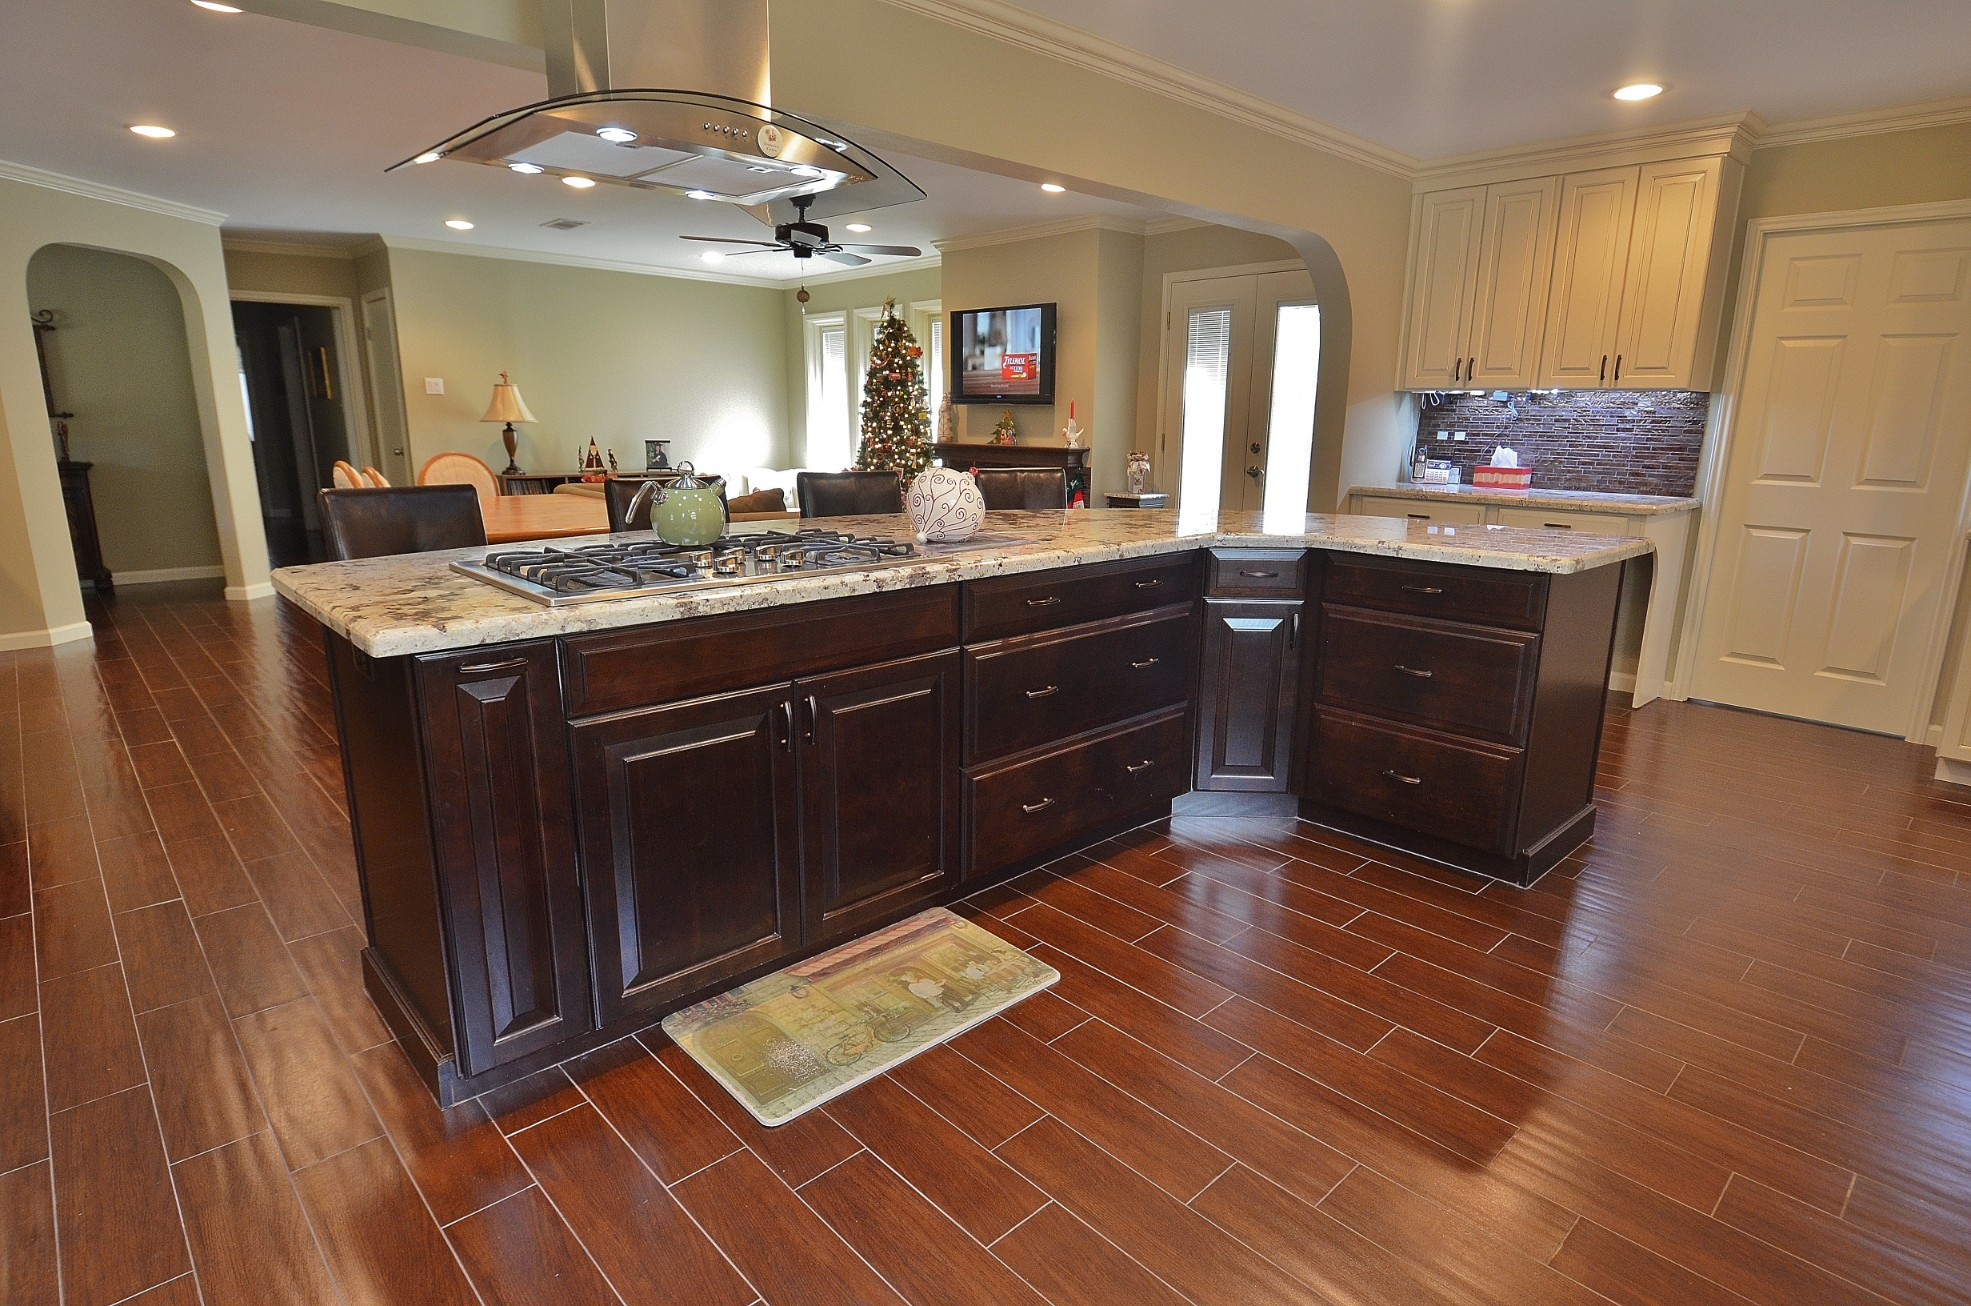 Braes meadow whole house renovation legal eagle contractors the wood floor is expansive and gorgeous it is actually wood look tile the perfect surface for a large kitchen with two busy cooks dailygadgetfo Images